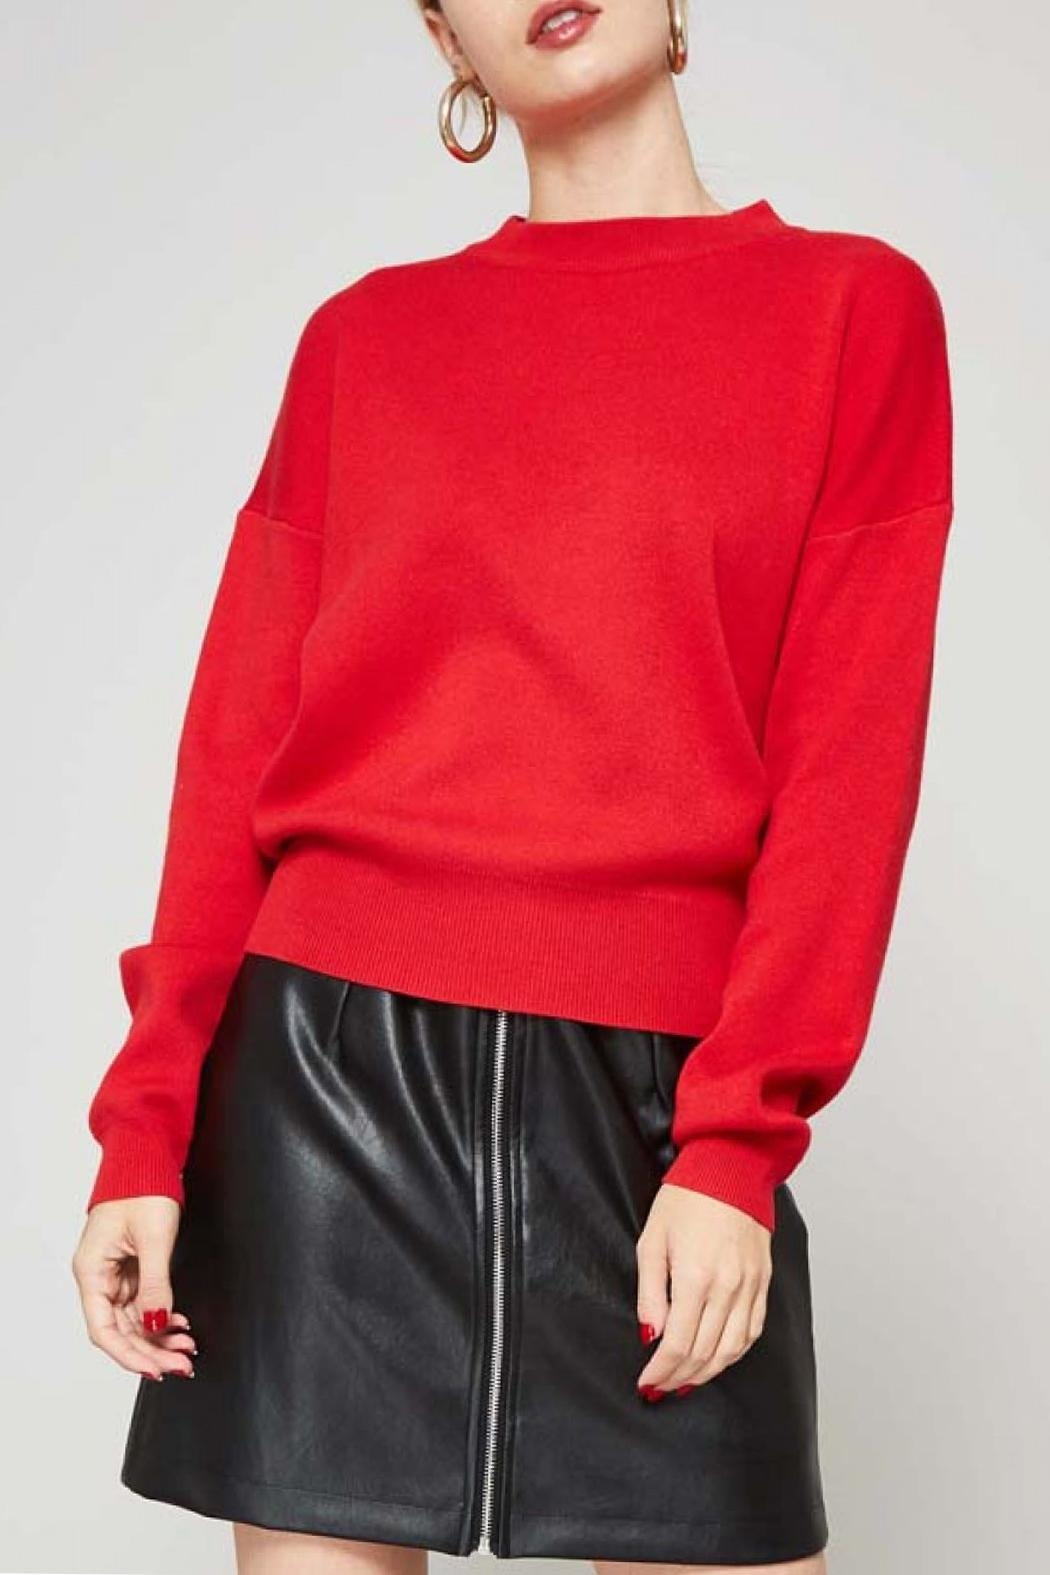 Promesa USA Red Heart Sweater - Front Full Image